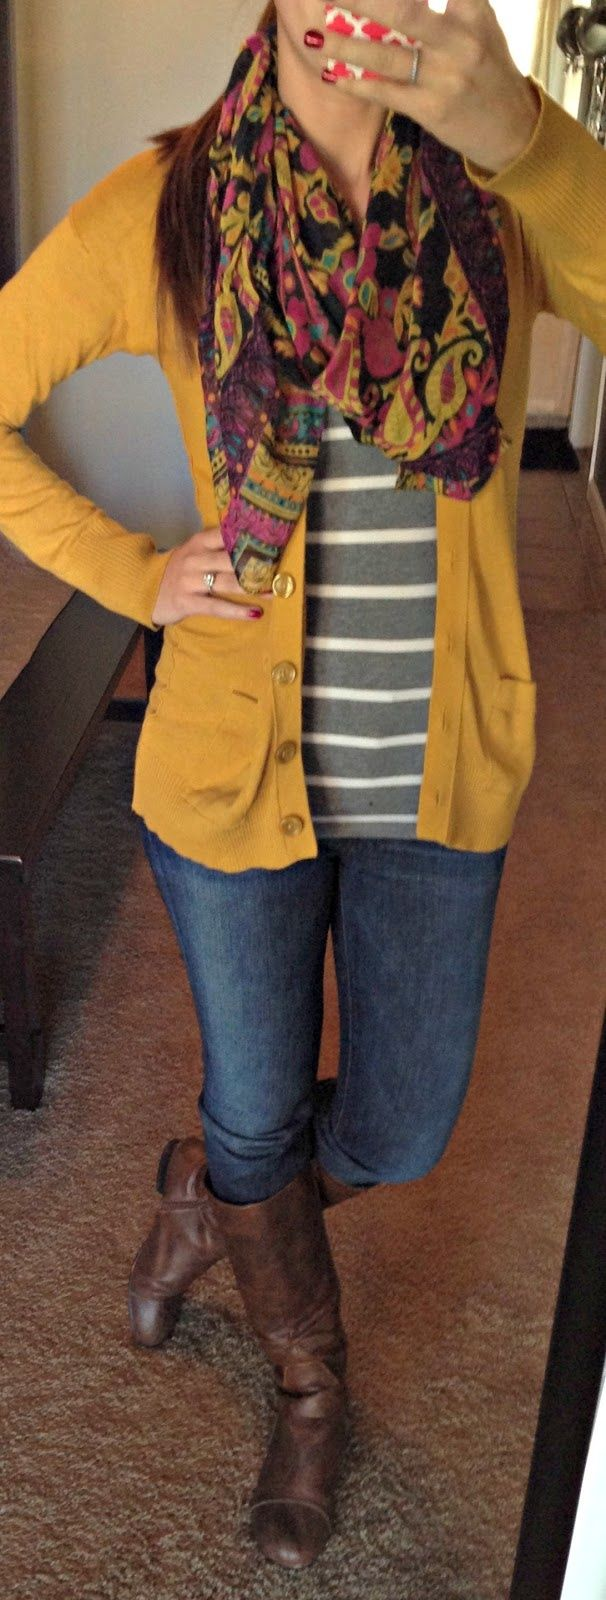 mustard yellow cardigan with mixed prints - mcloveinstyle